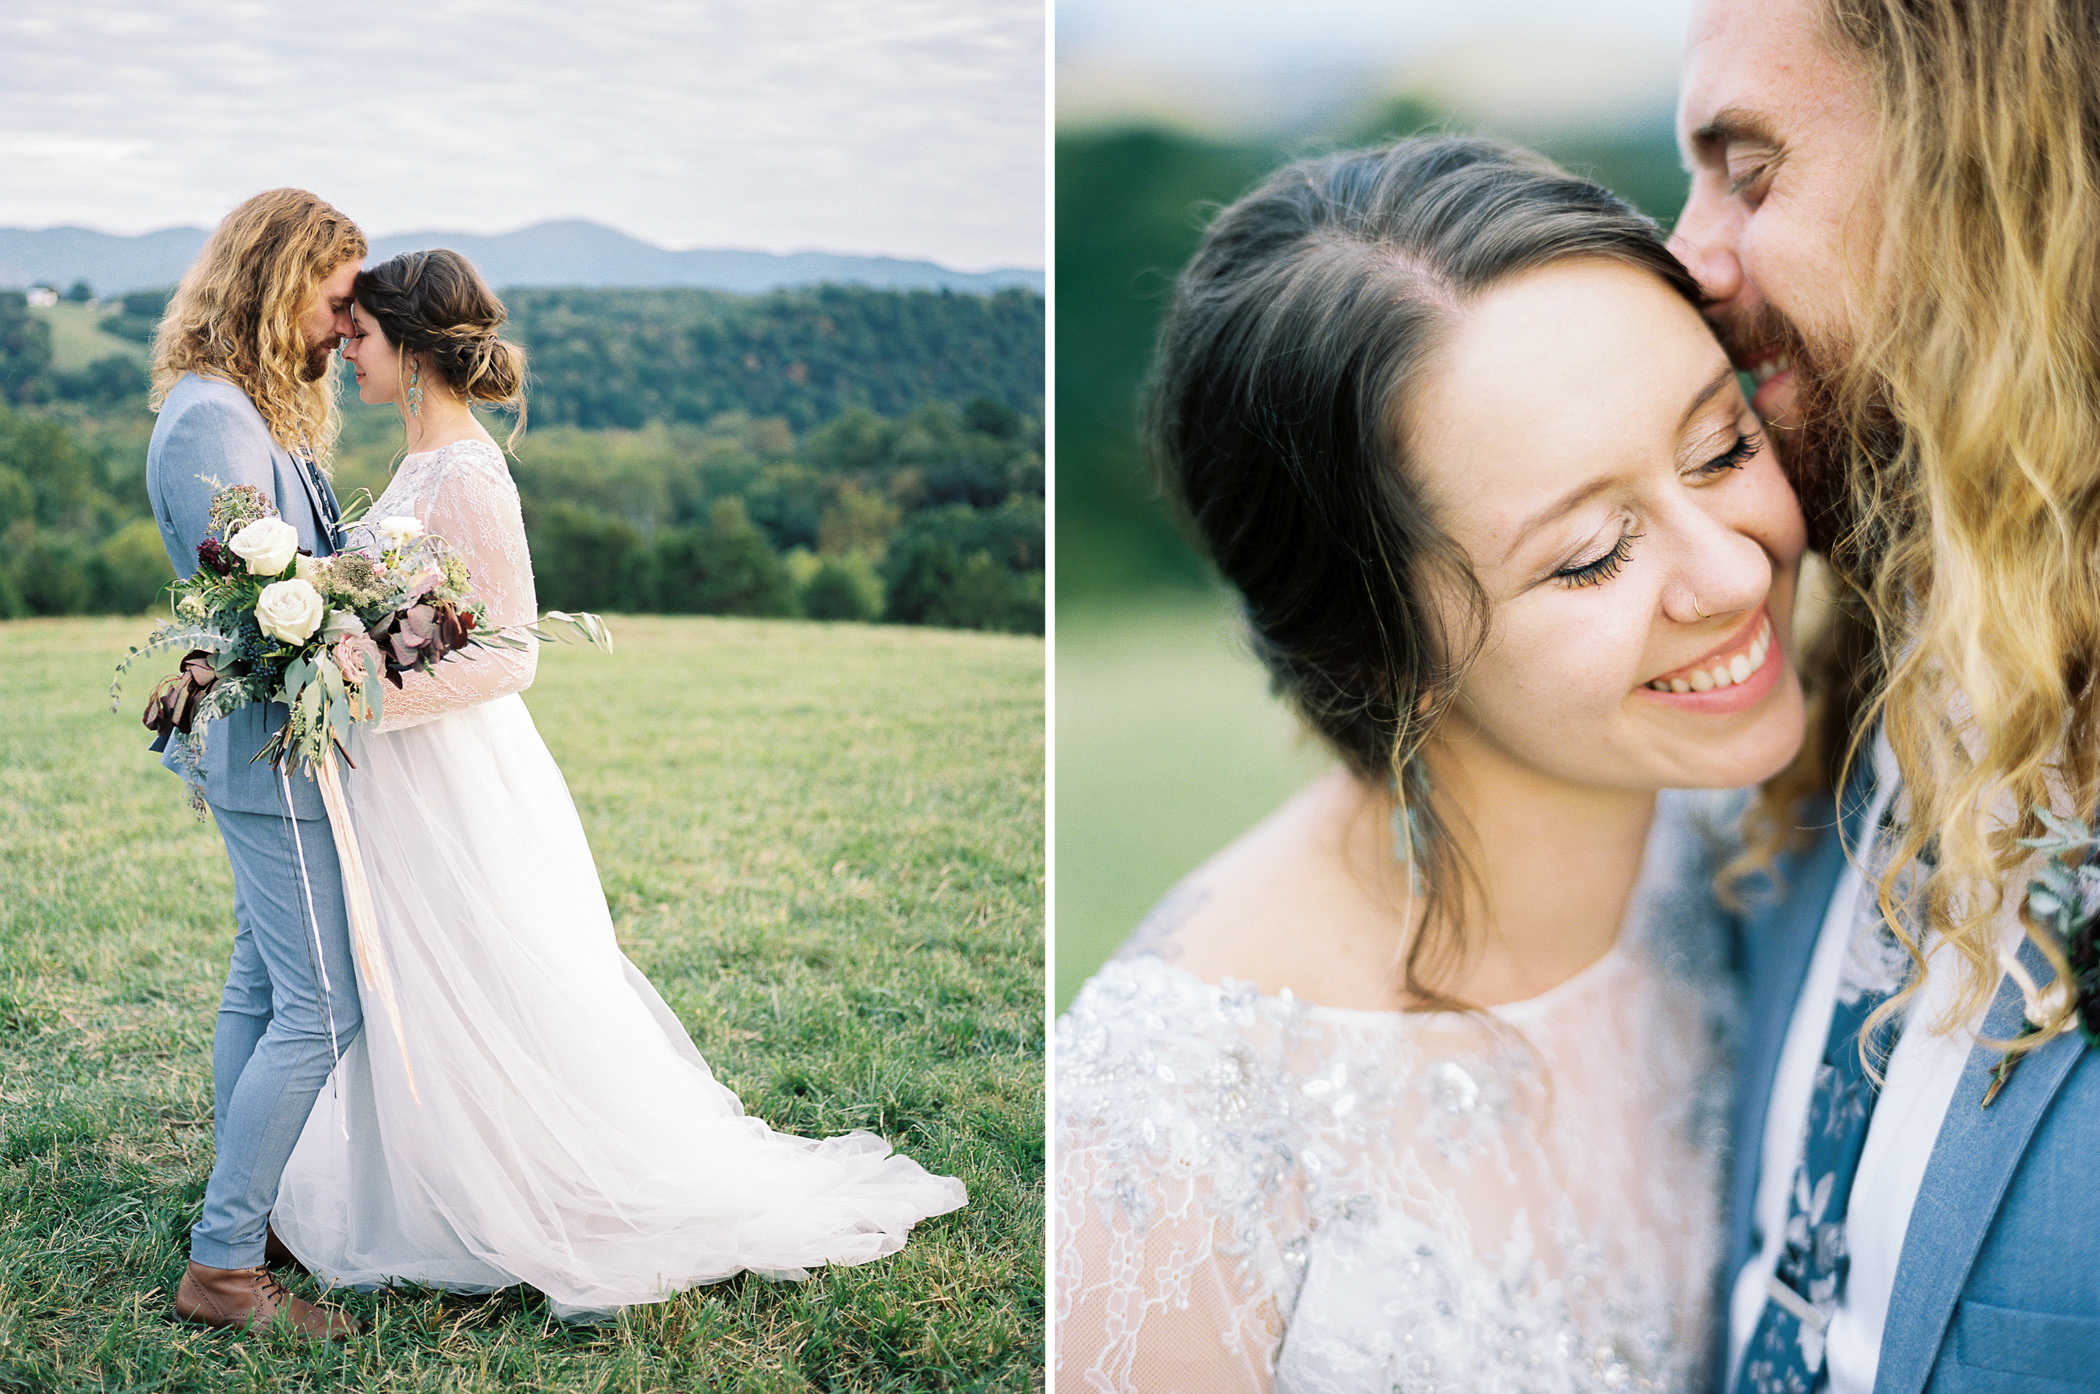 Charlotte-Film-Wedding_Photographer-heartstone-lodge-virginia-34.jpg